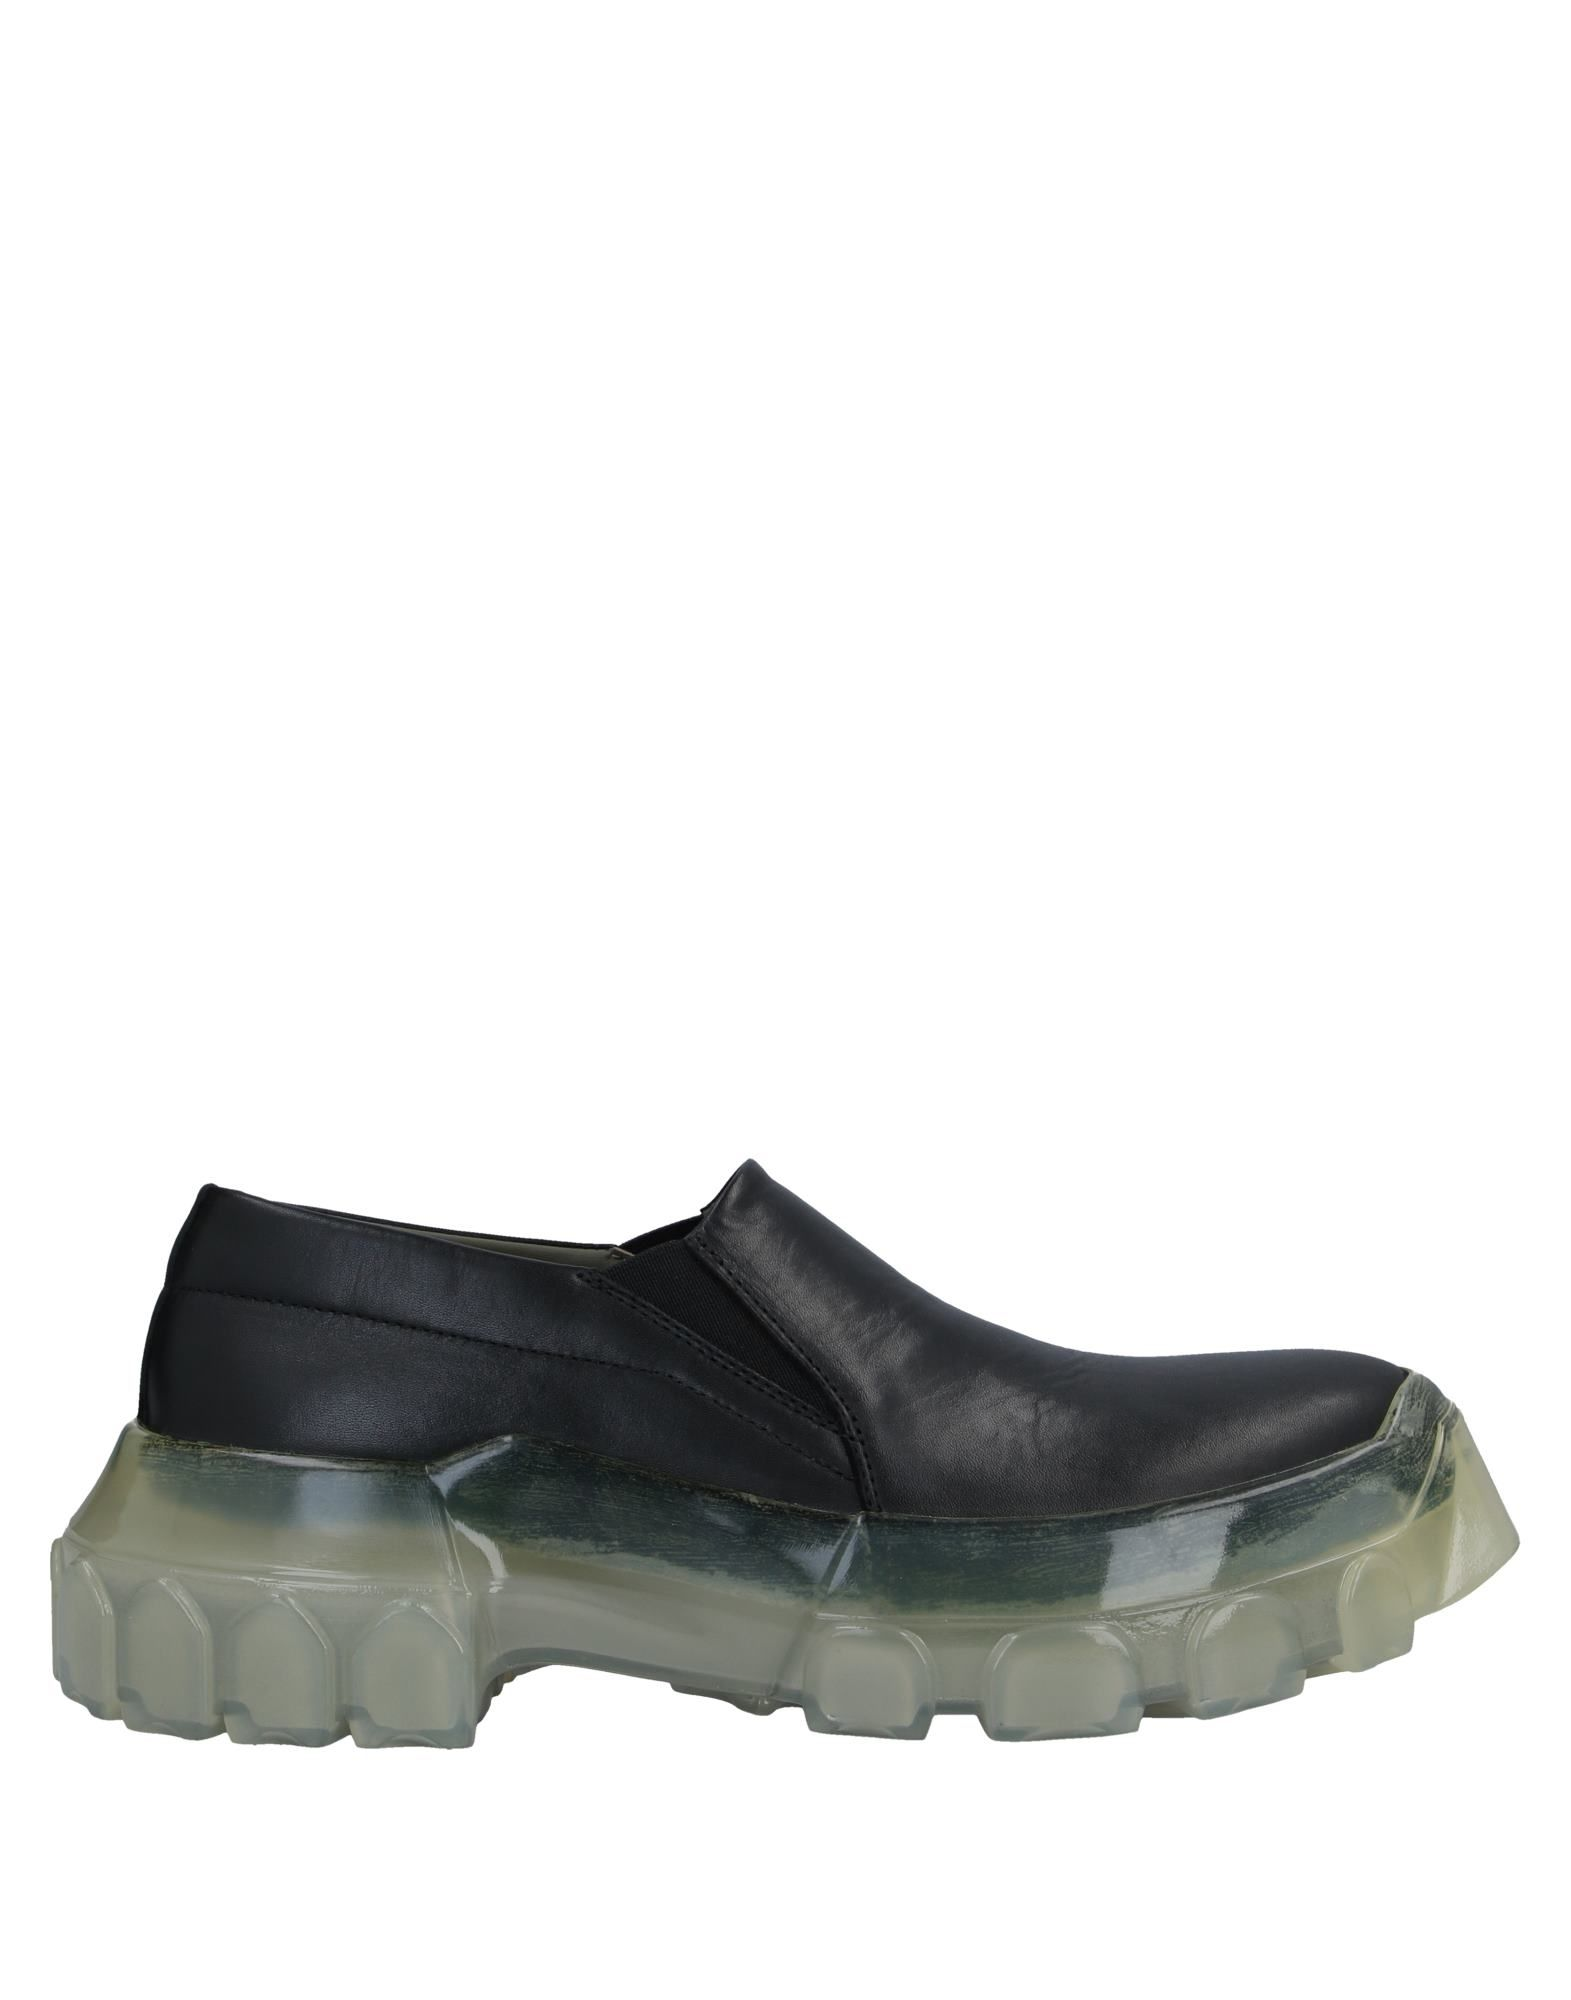 RICK OWENS Loafers. leather, no appliqués, solid color, elasticized gores, round toeline, square heel, leather lining, rubber sole, contains non-textile parts of animal origin. Soft Leather